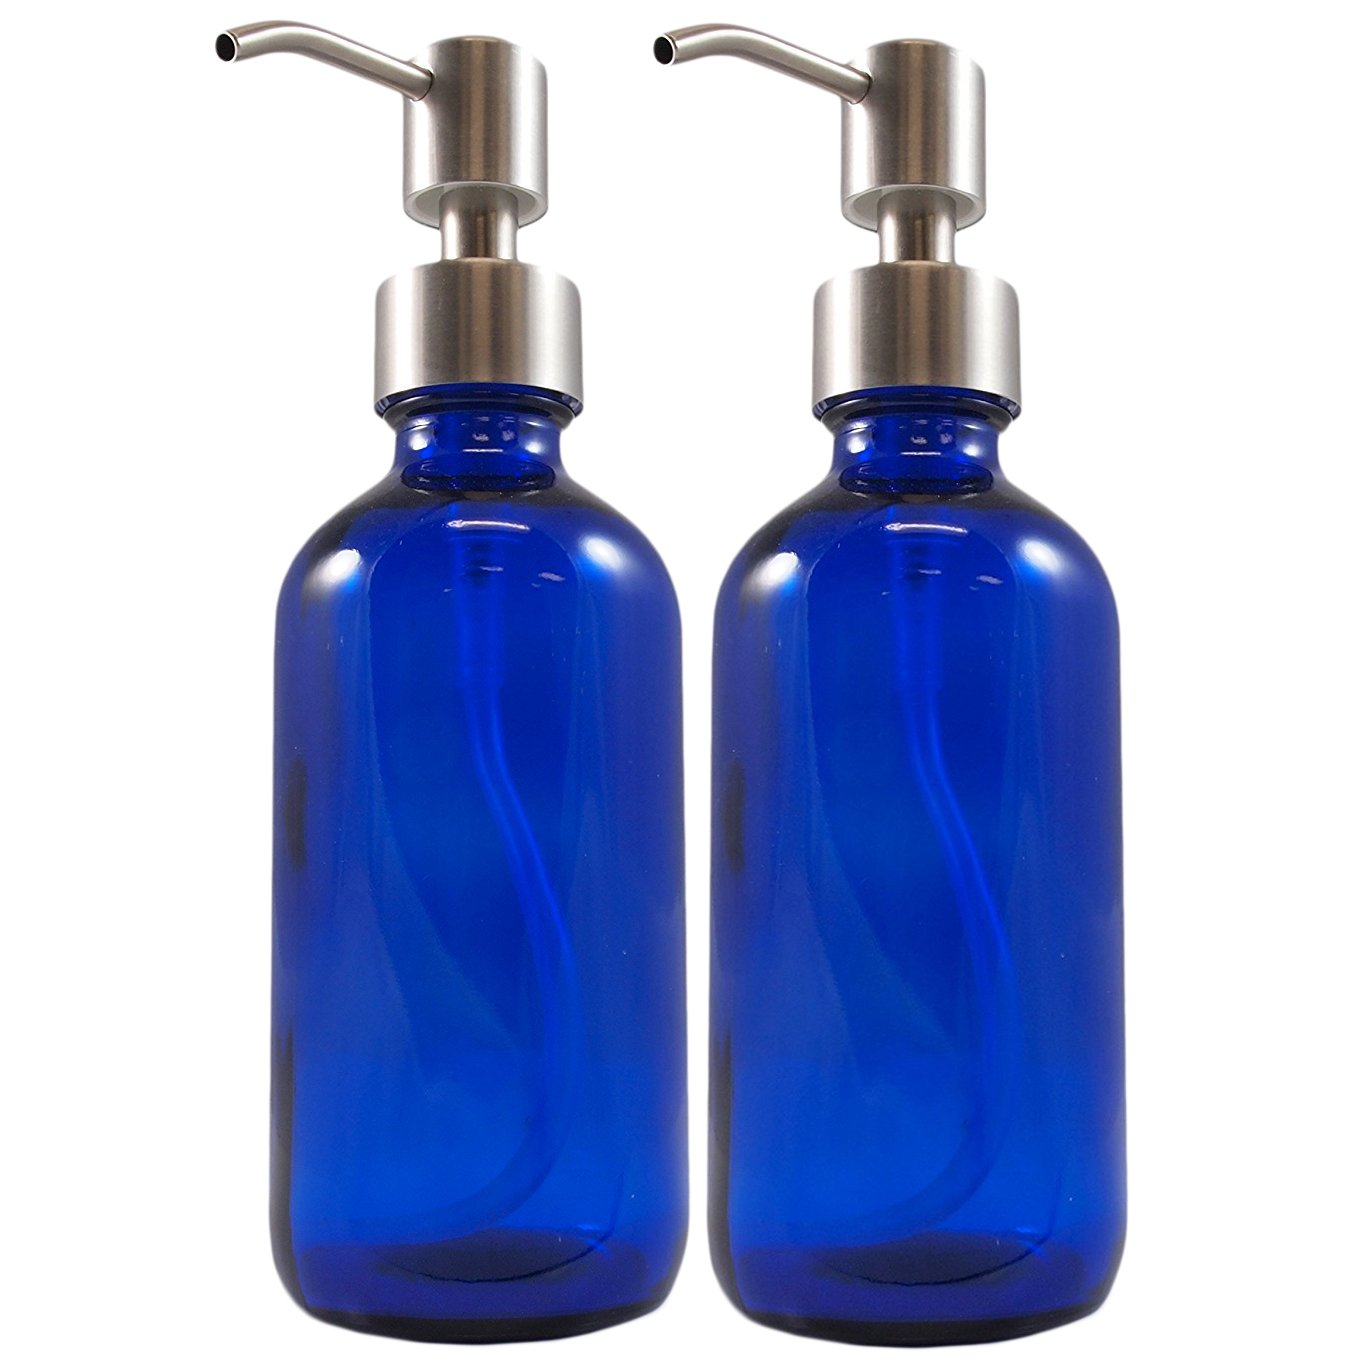 Cornucopia Brands Cobalt Blue Glass Boston Round Bottles with Stainless Steel Pumps, Great for Essential Oils, Lotions and Liquid Soap, 8 oz., Pack of 2